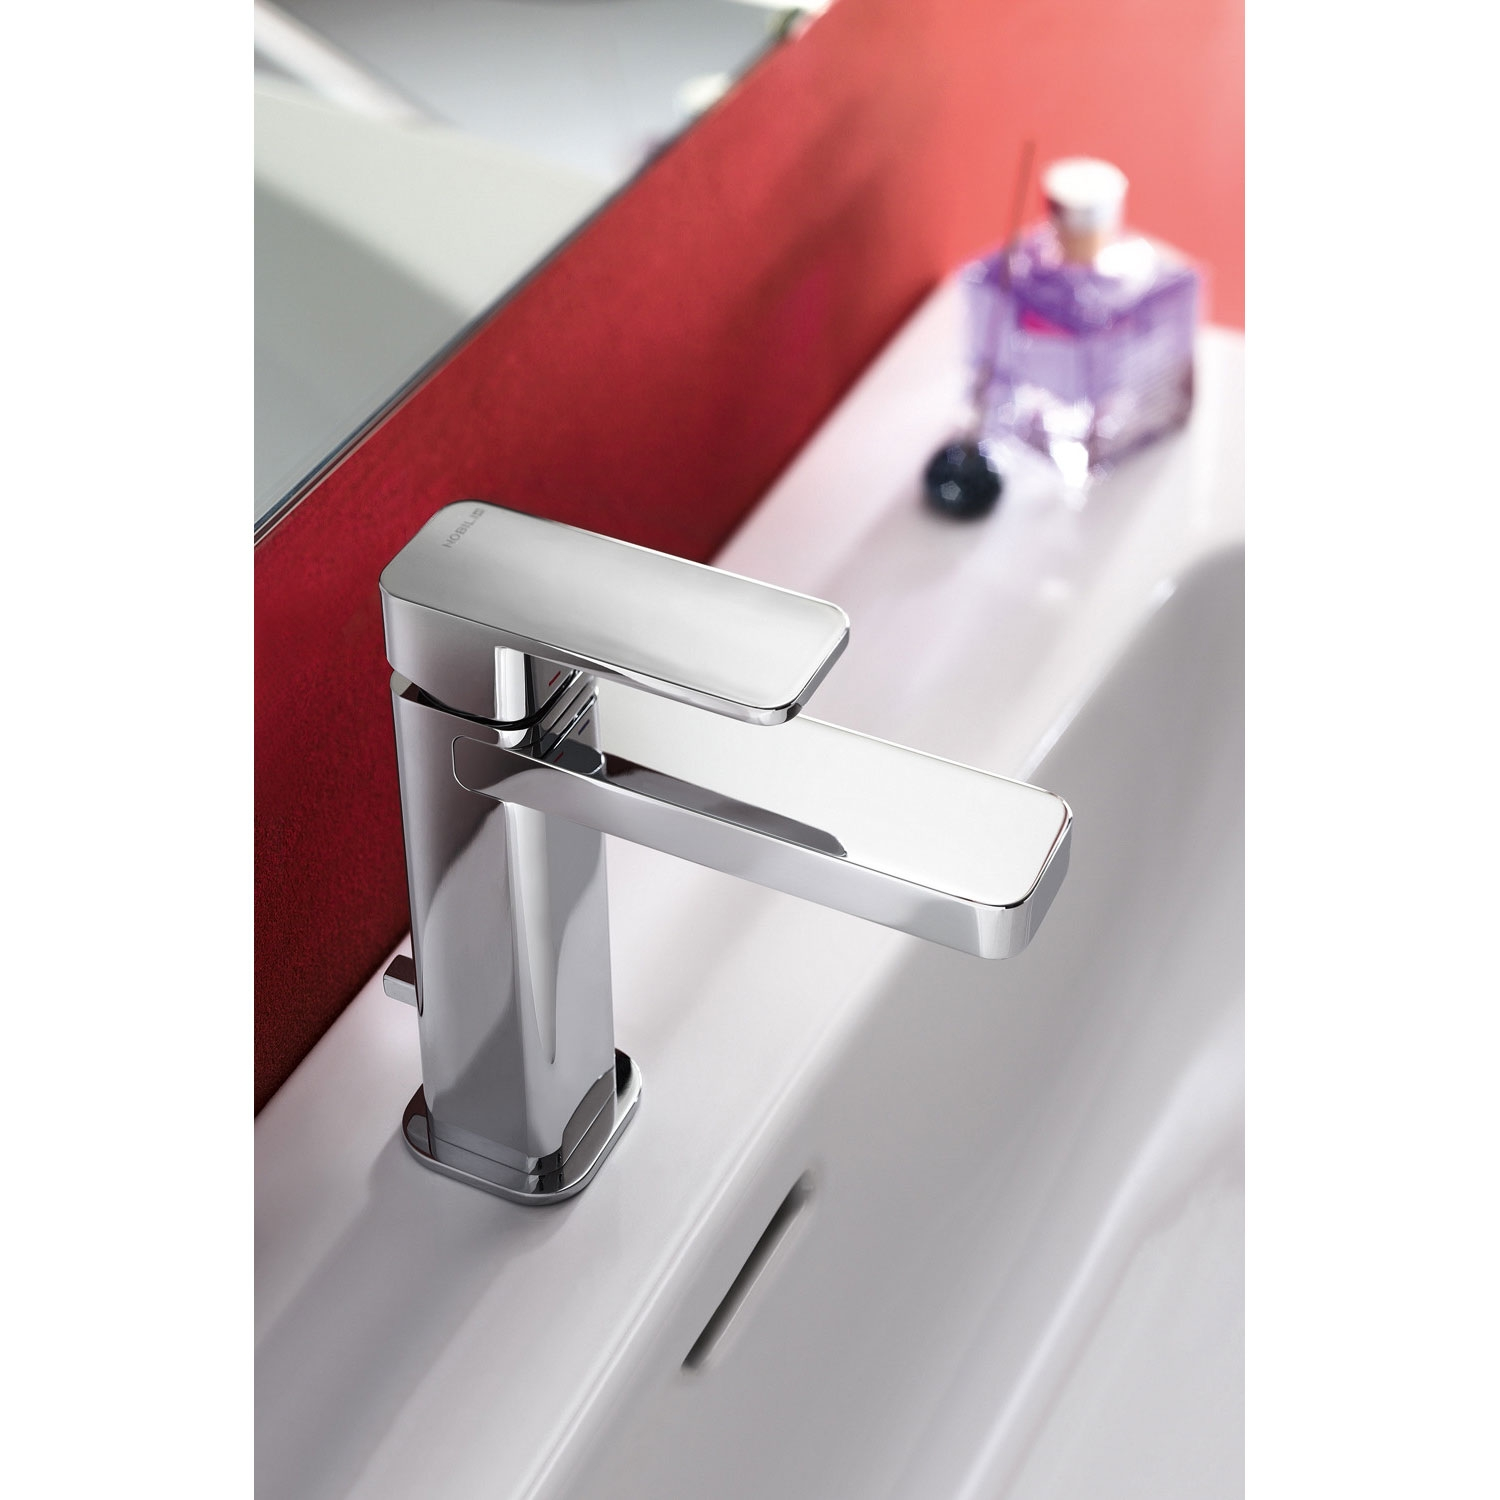 Verona Loop Mono Basin Mixer Tap with Pop-Up Waste - Chrome